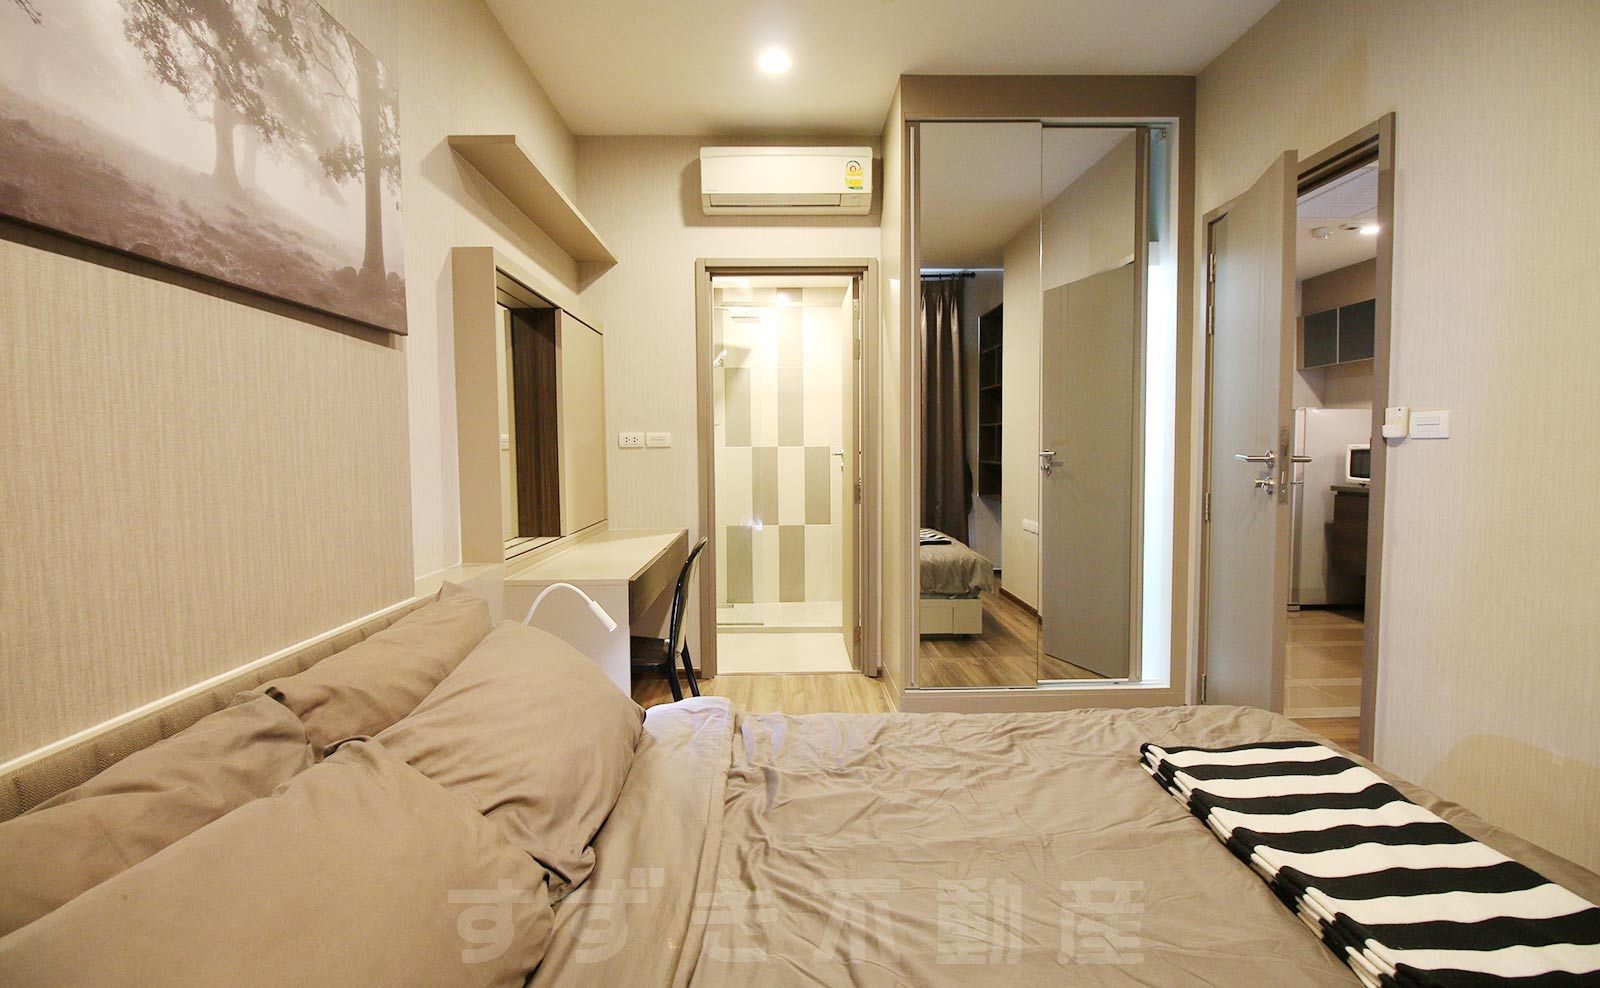 Teal Sathorn-Taksin:1Bed Room Photos No.8